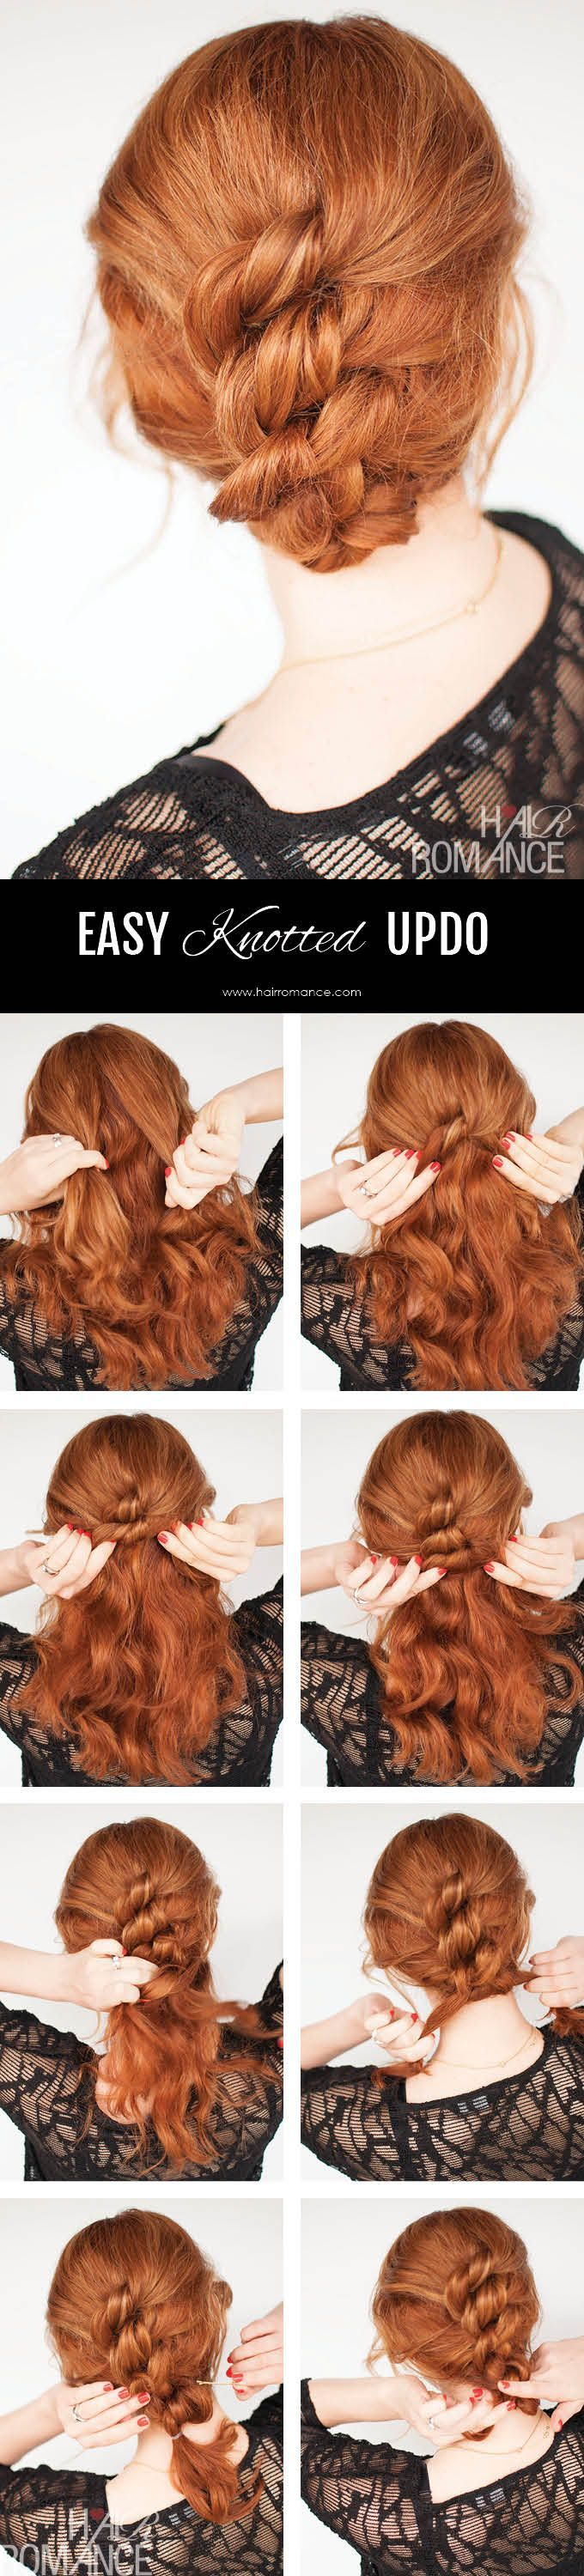 Knotted Updo Hairstyle Tutorial